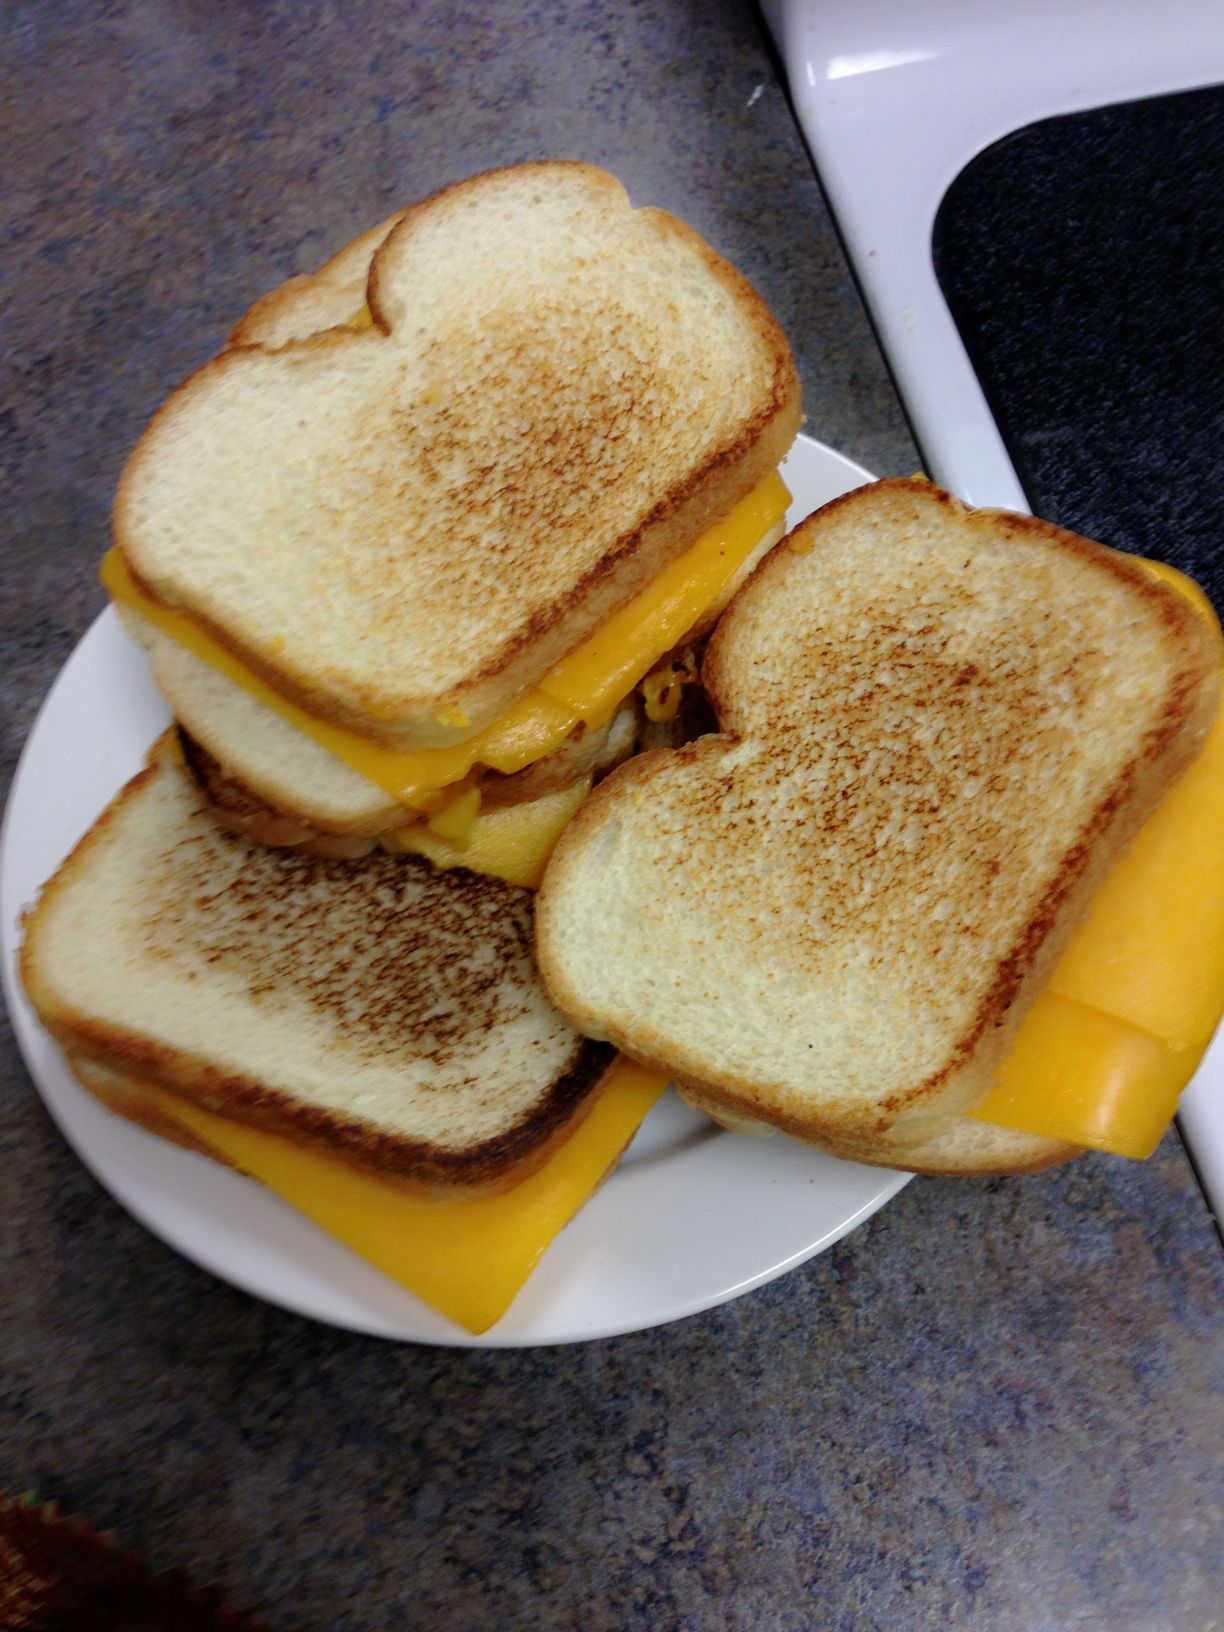 Princess party: grilled cheese, bread and cheese